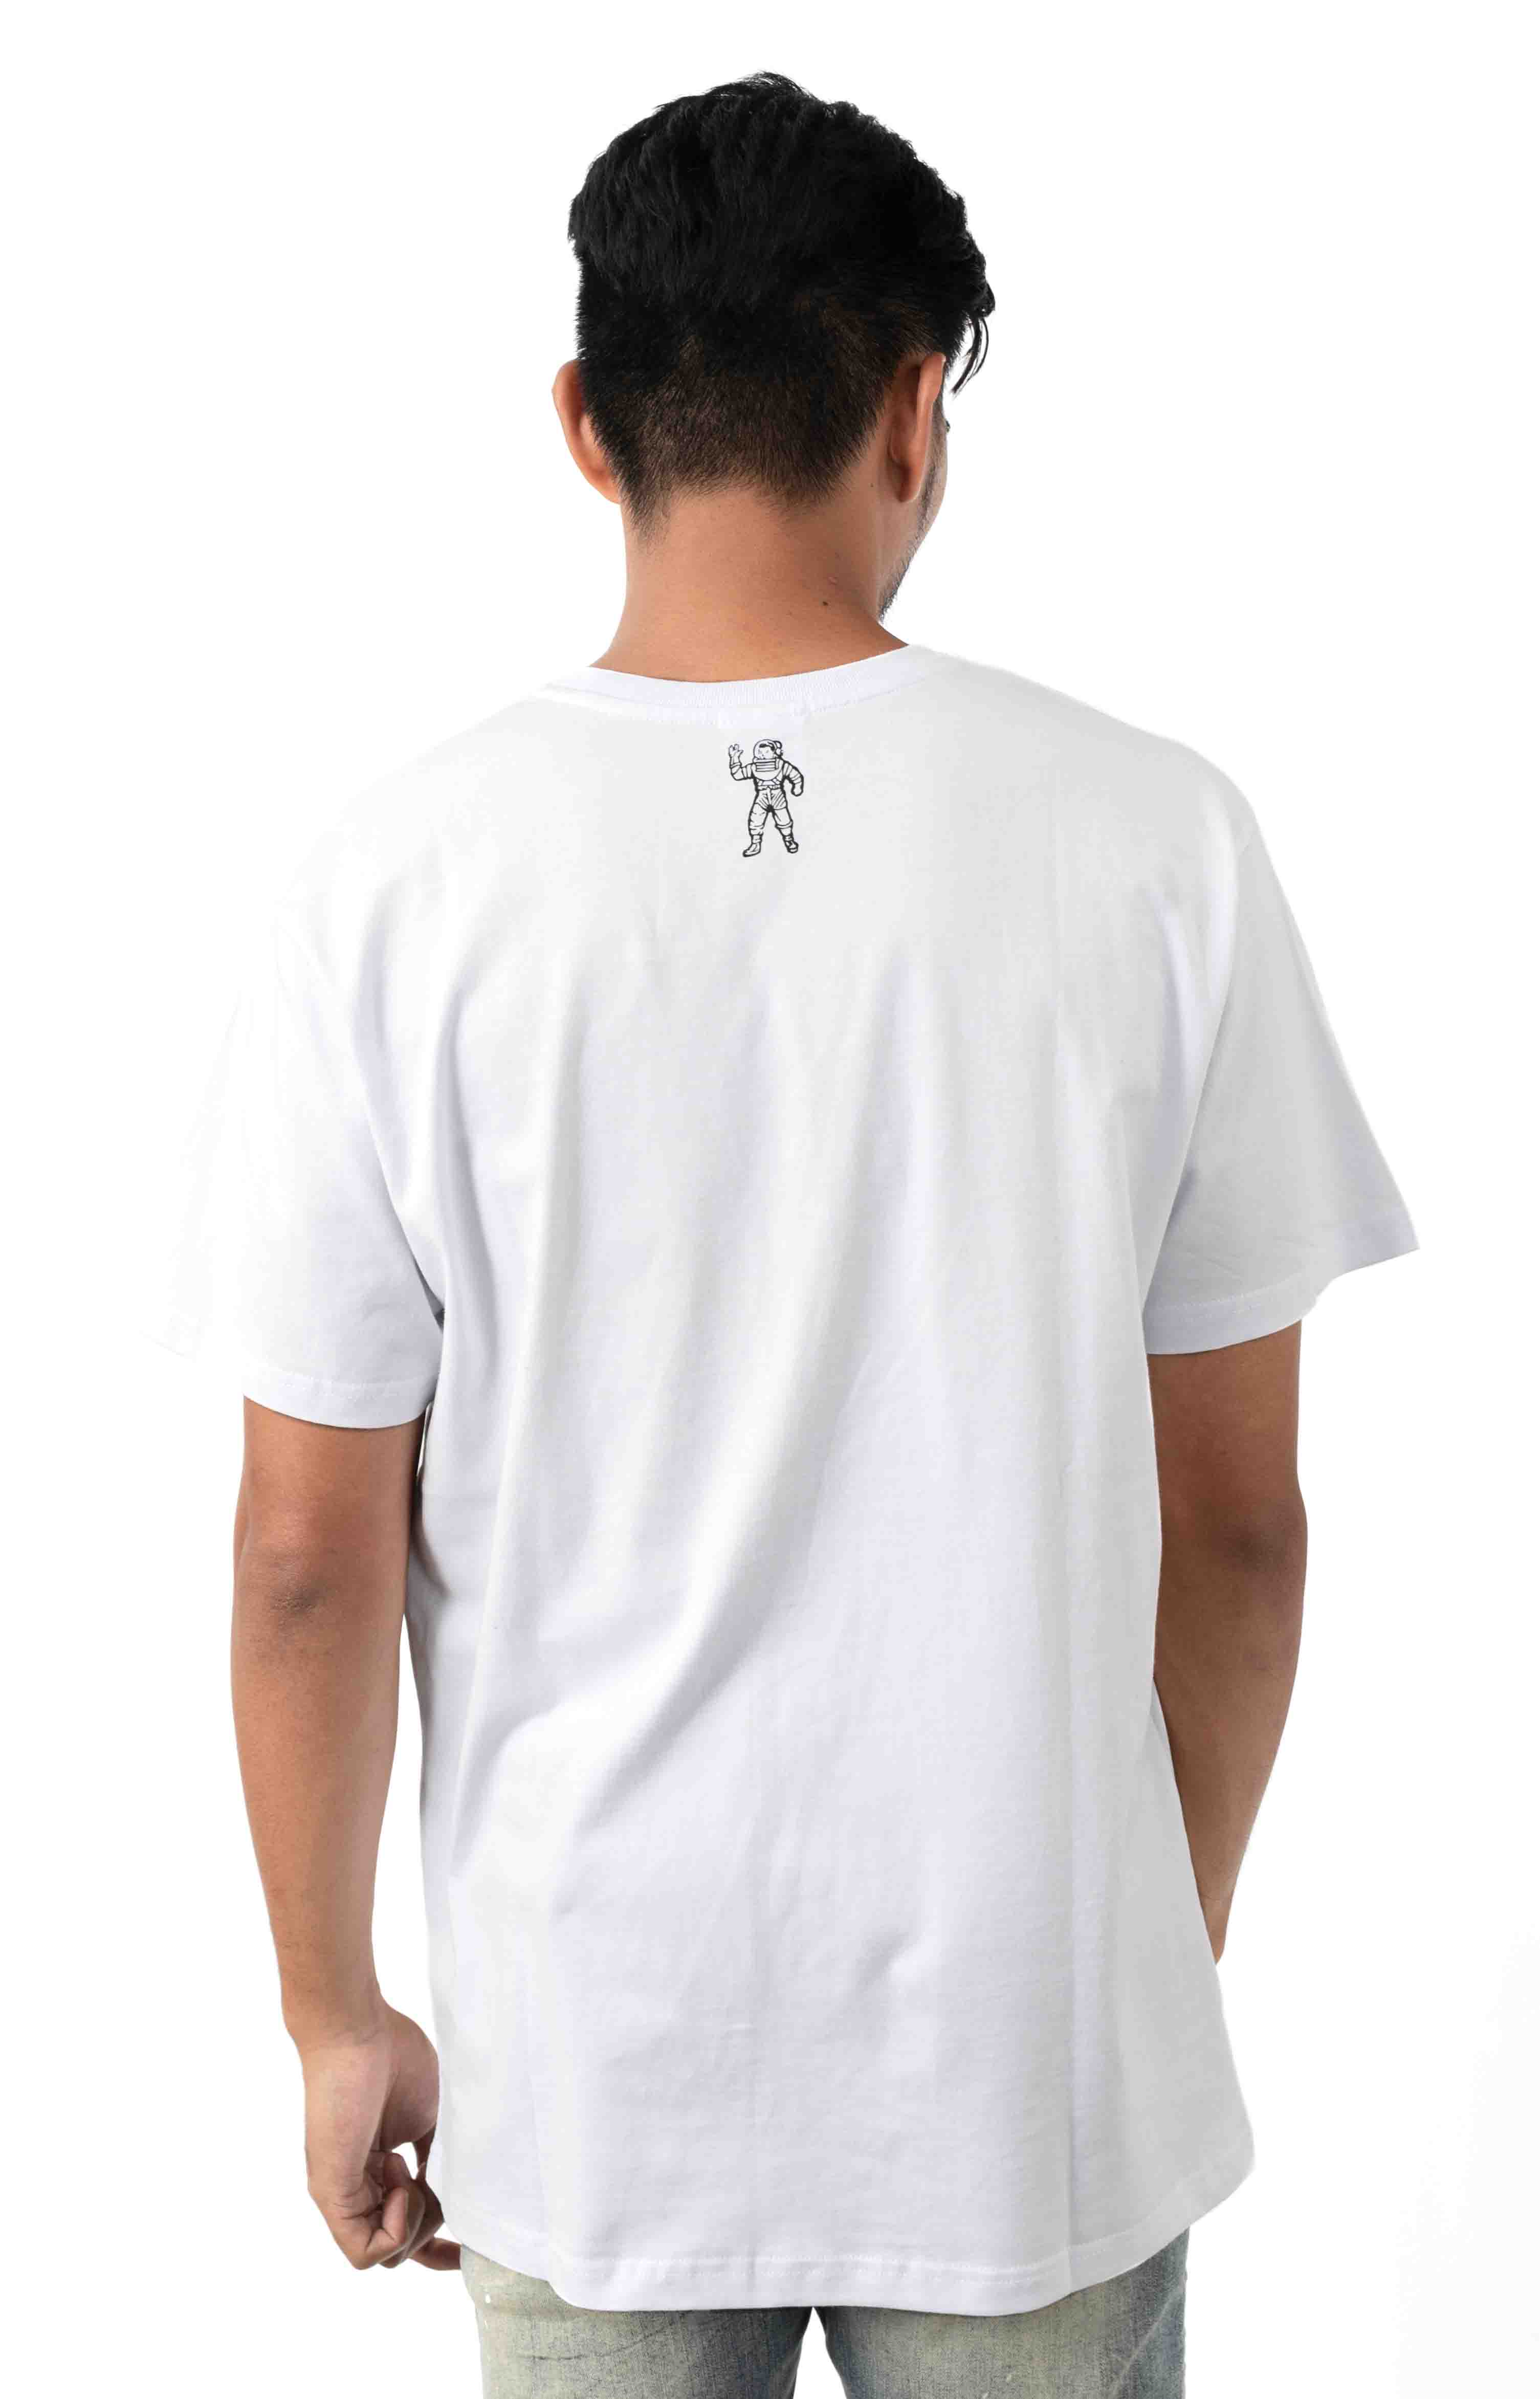 BB Walker T-Shirt - White  3